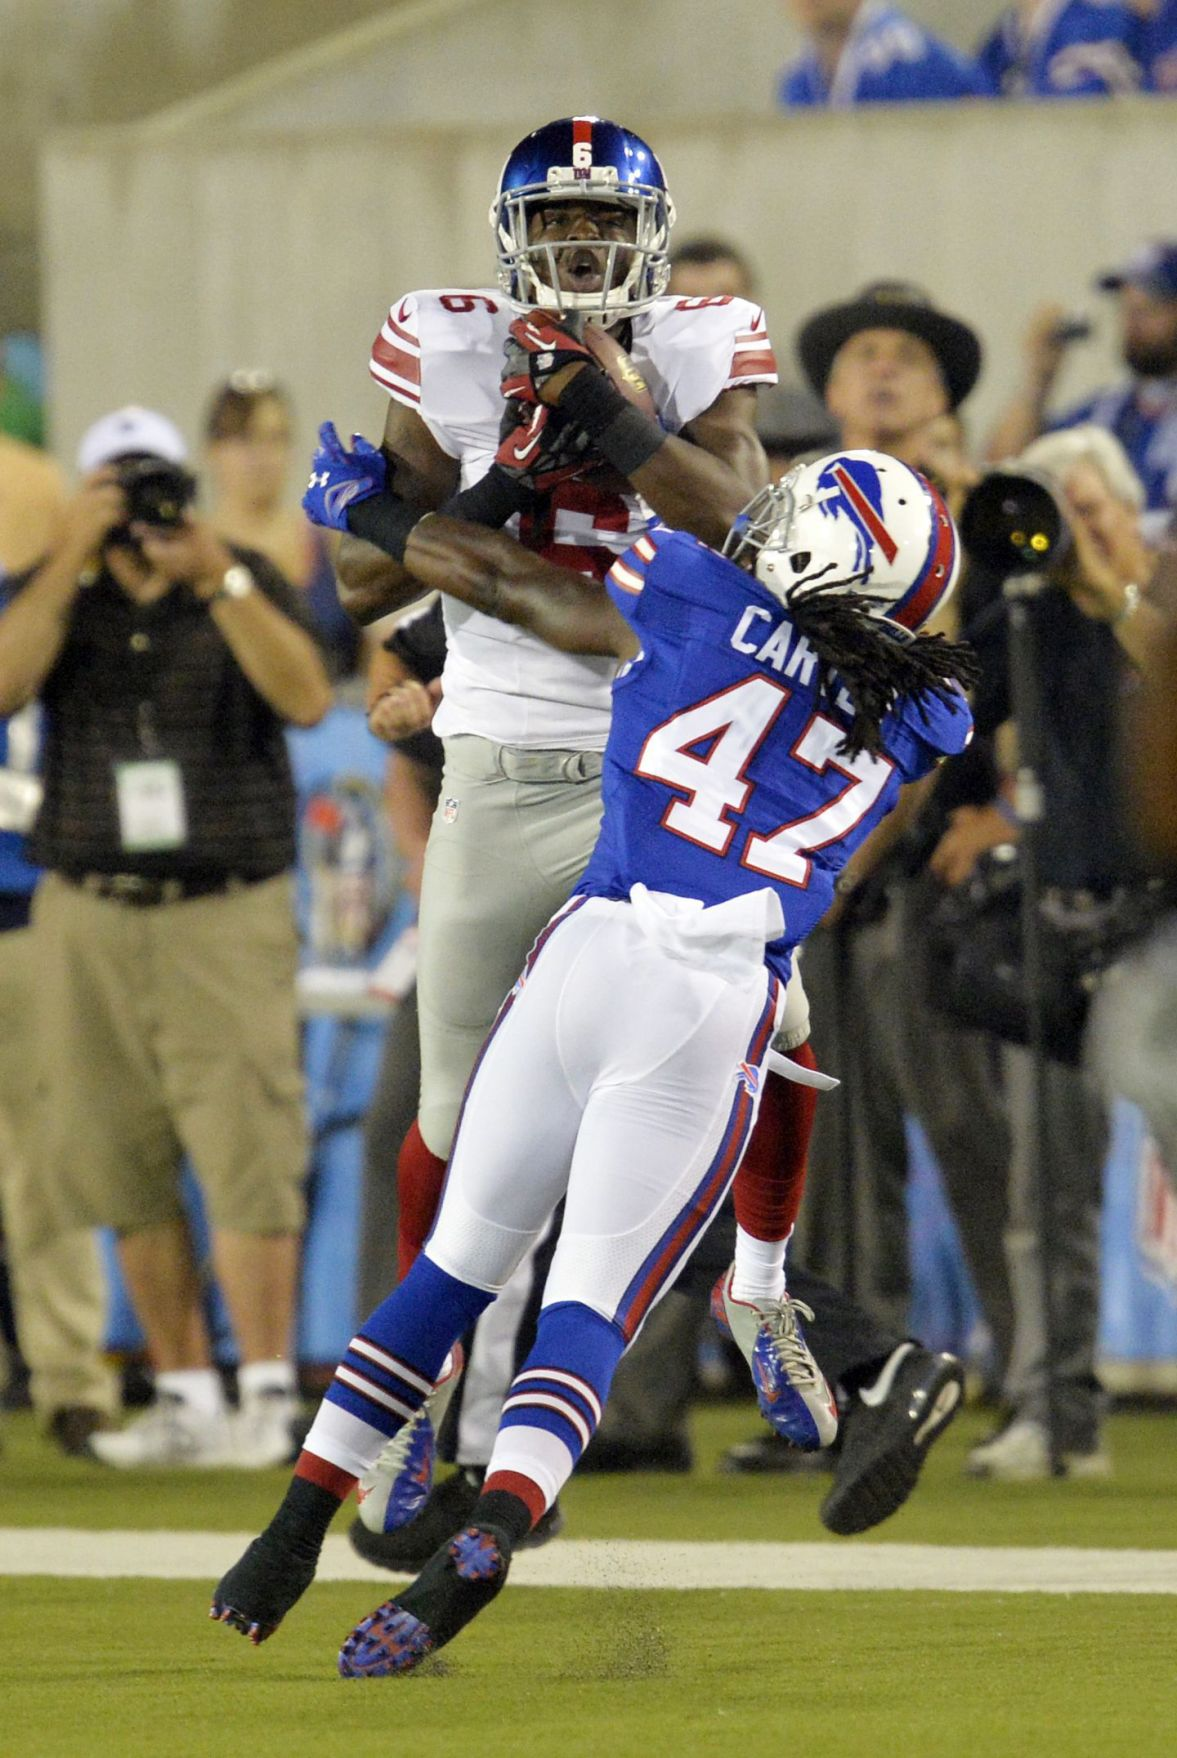 Three in a row: North Charleston's Corey Washington scores another game-winner for New York Giants